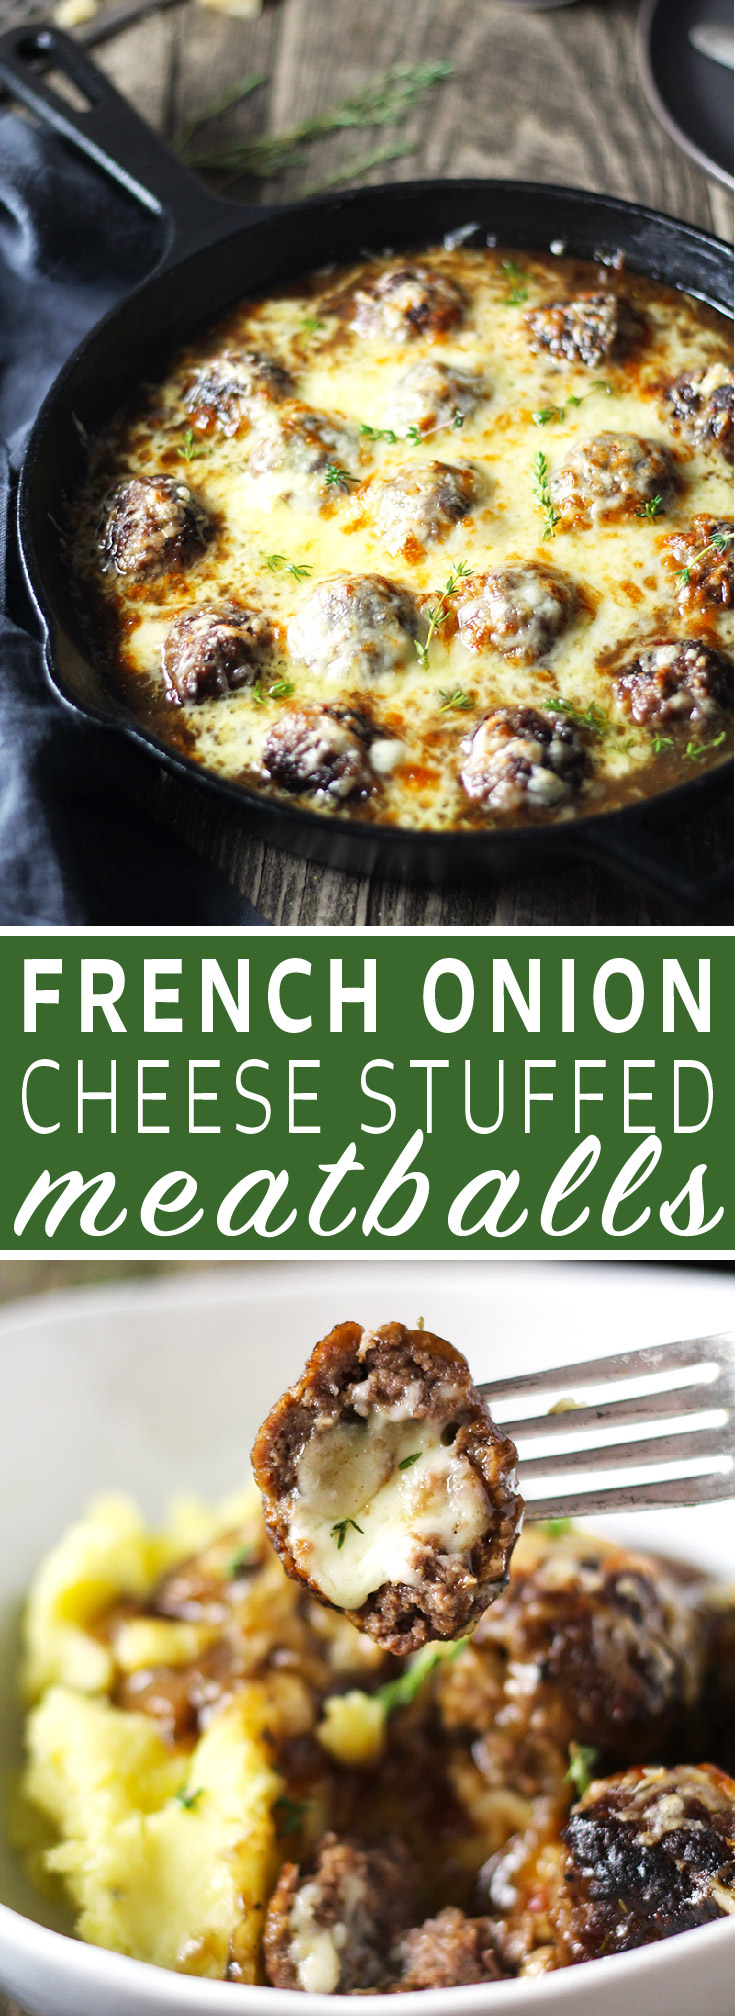 One skillet French Onion Cheese Stuffed Meatballs are the perfect alternative to soup! Meatballs stuffed with Swiss cheese and smothered in perfectly caramelized onion and red wine gravy.